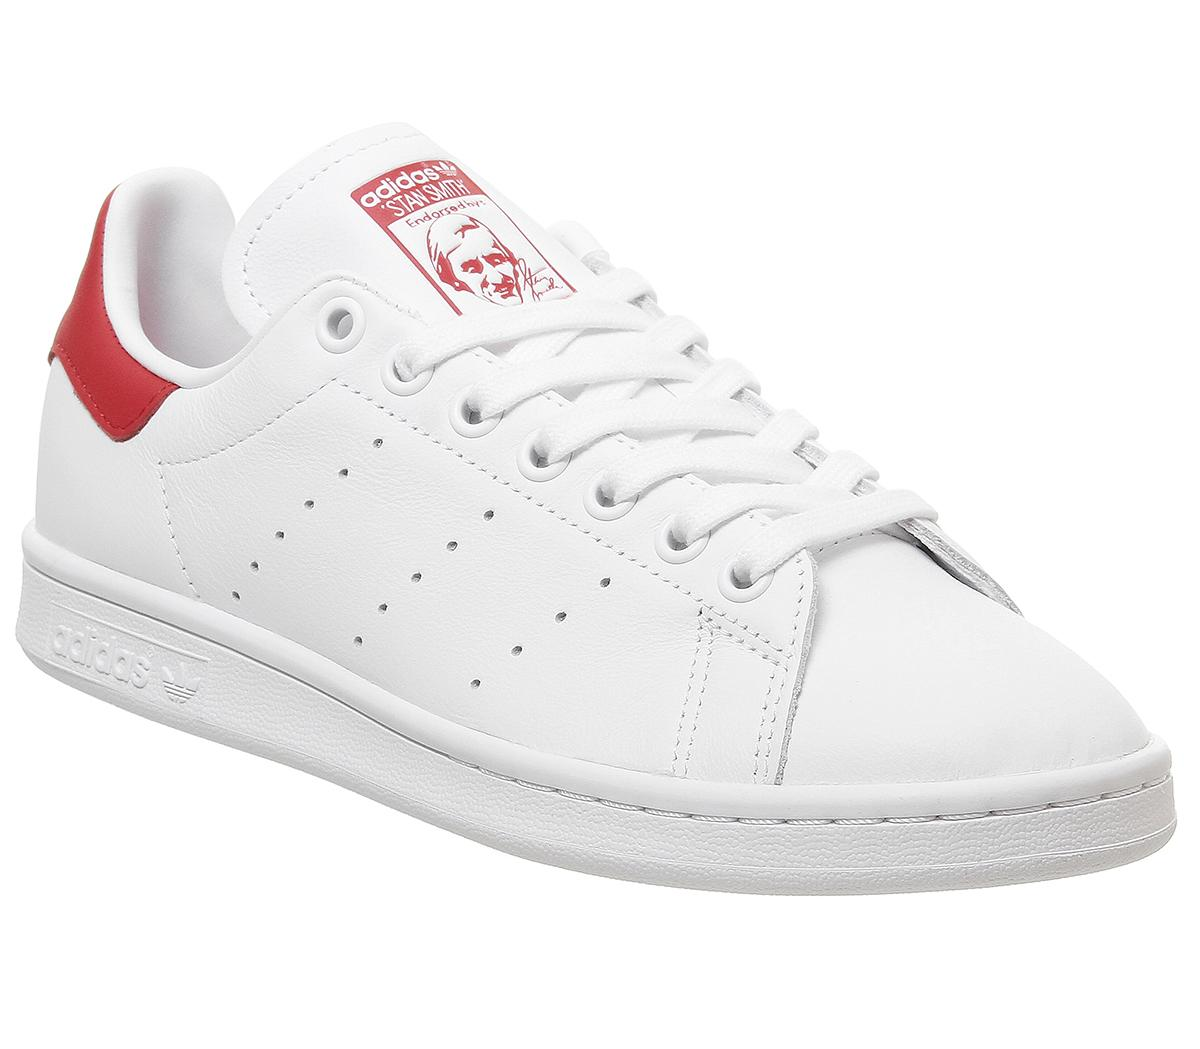 radioactividad de madera gatito  adidas Stan Smith Trainers White Lush Red - Hers trainers